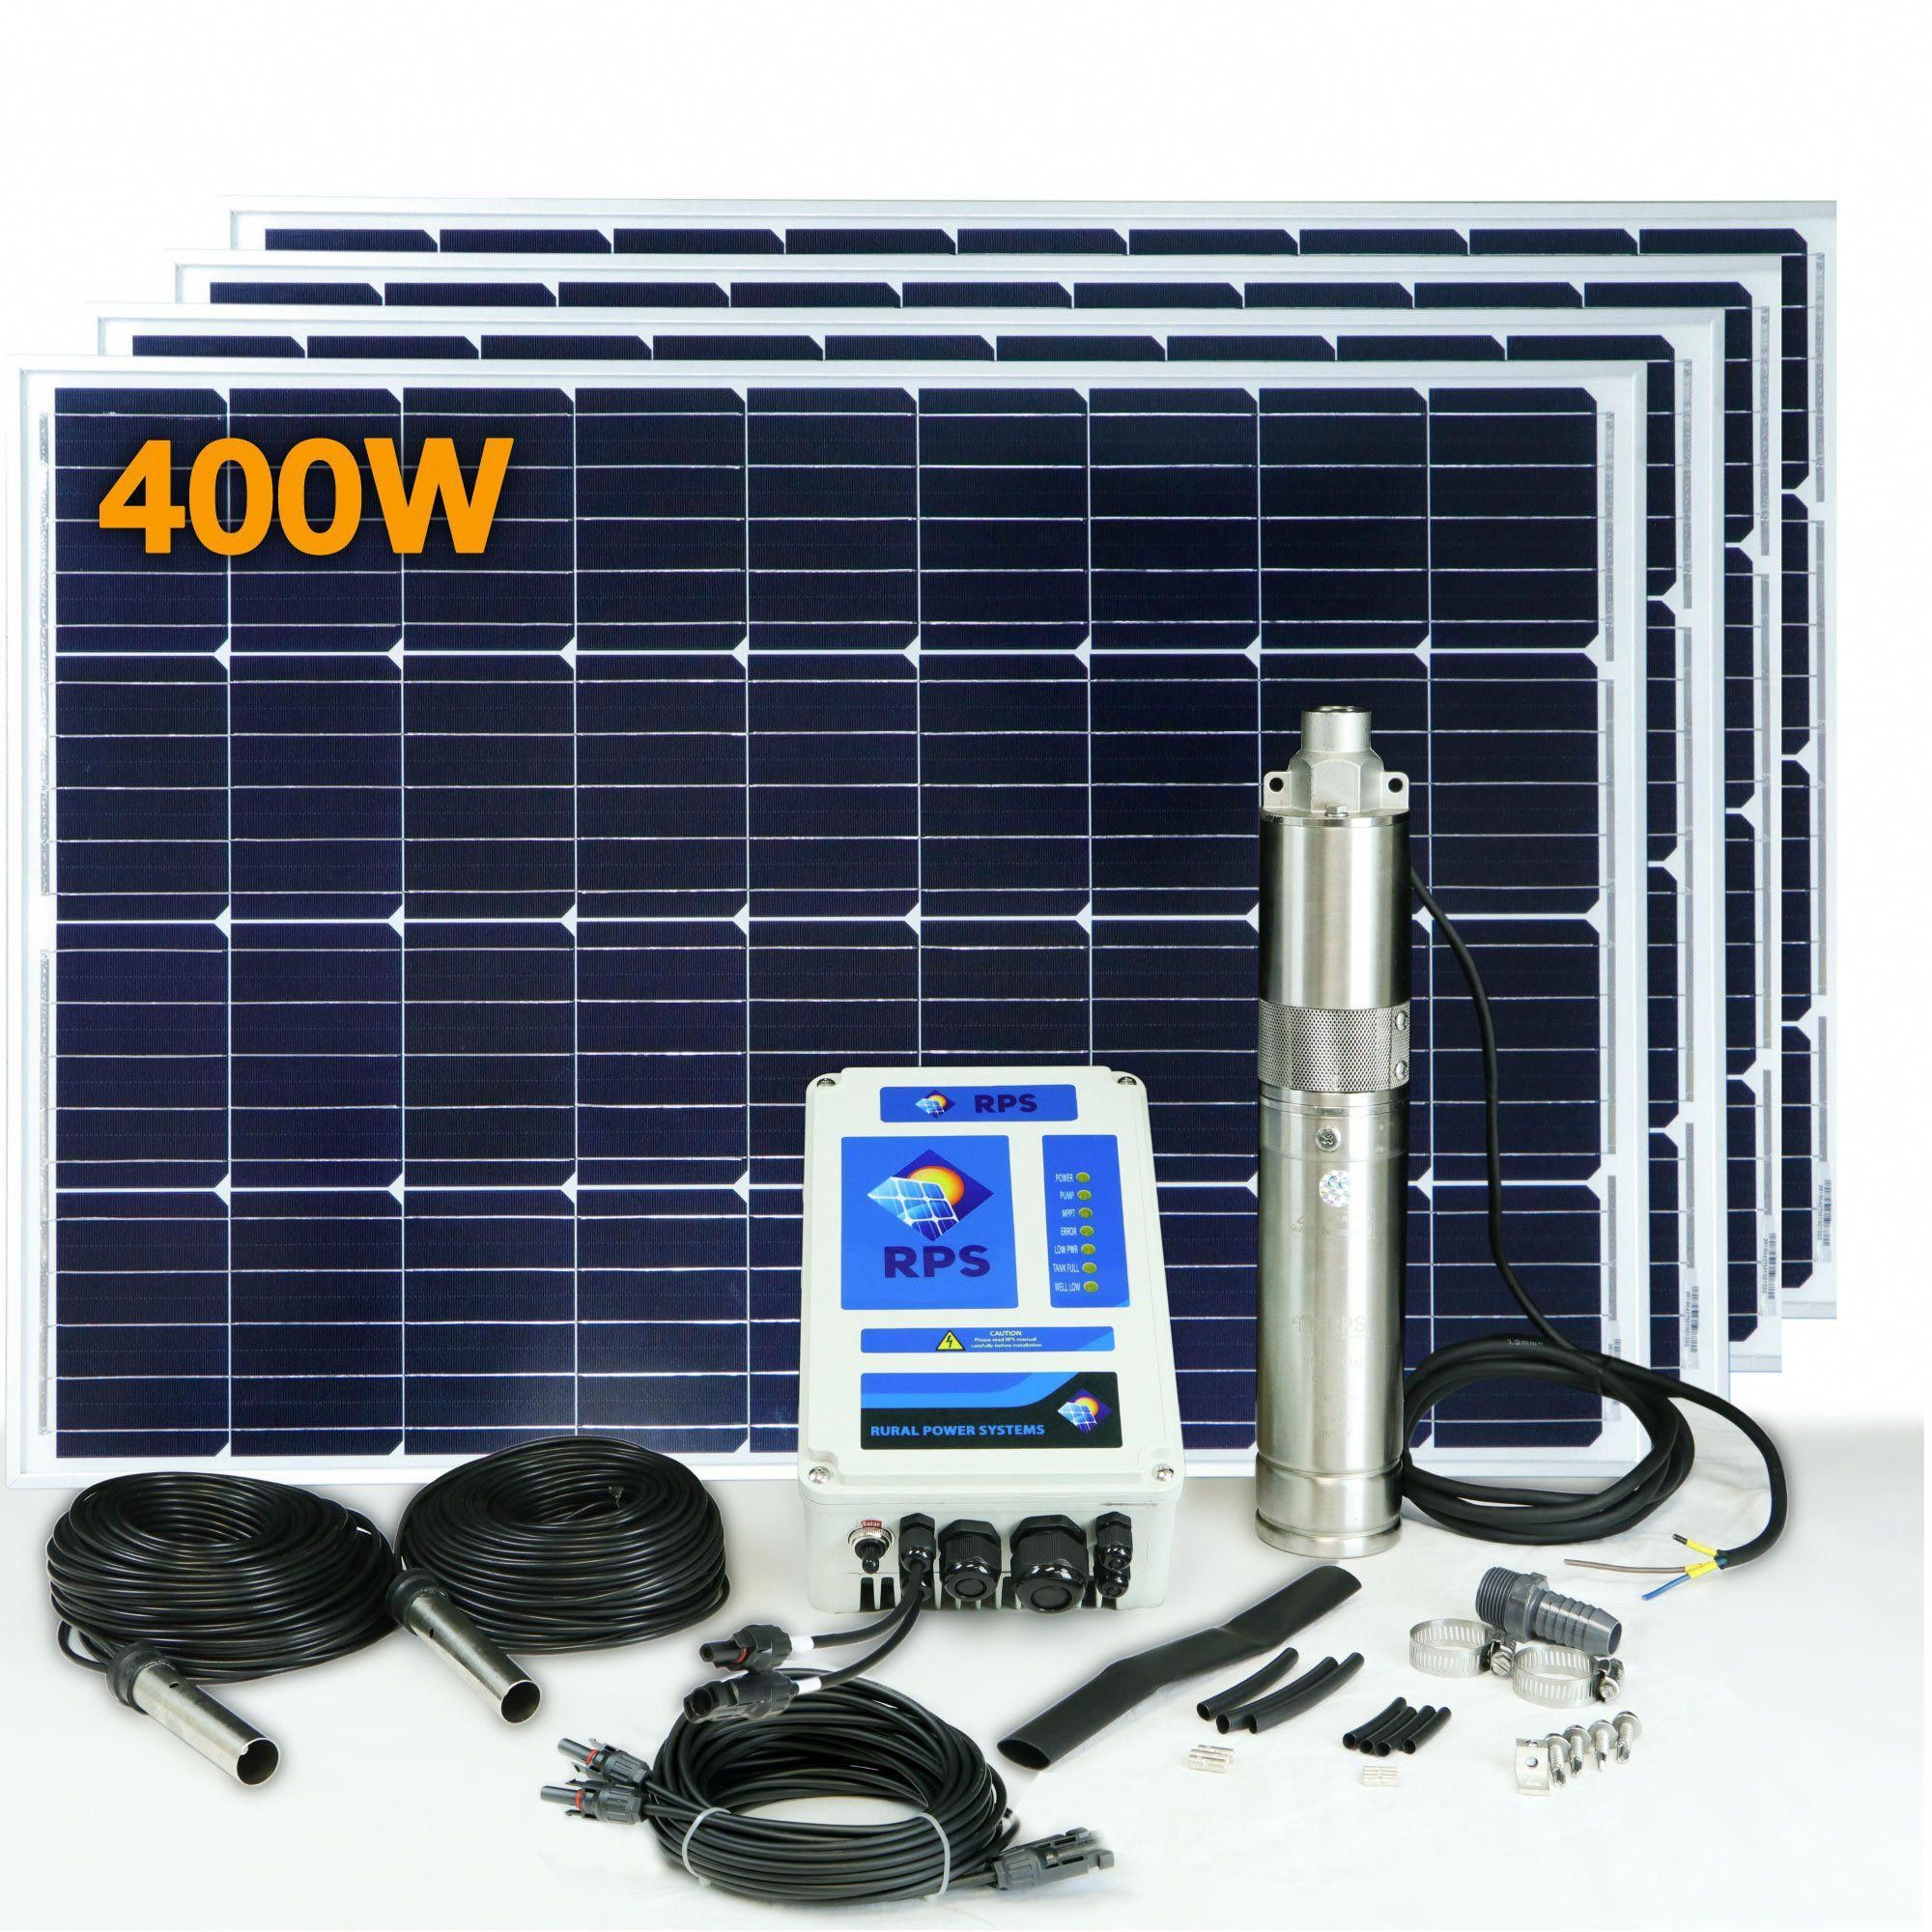 Rps 400 Solar Well Pump Kit Advantages Of Solar Energy Best Solar Panels Solar Panels